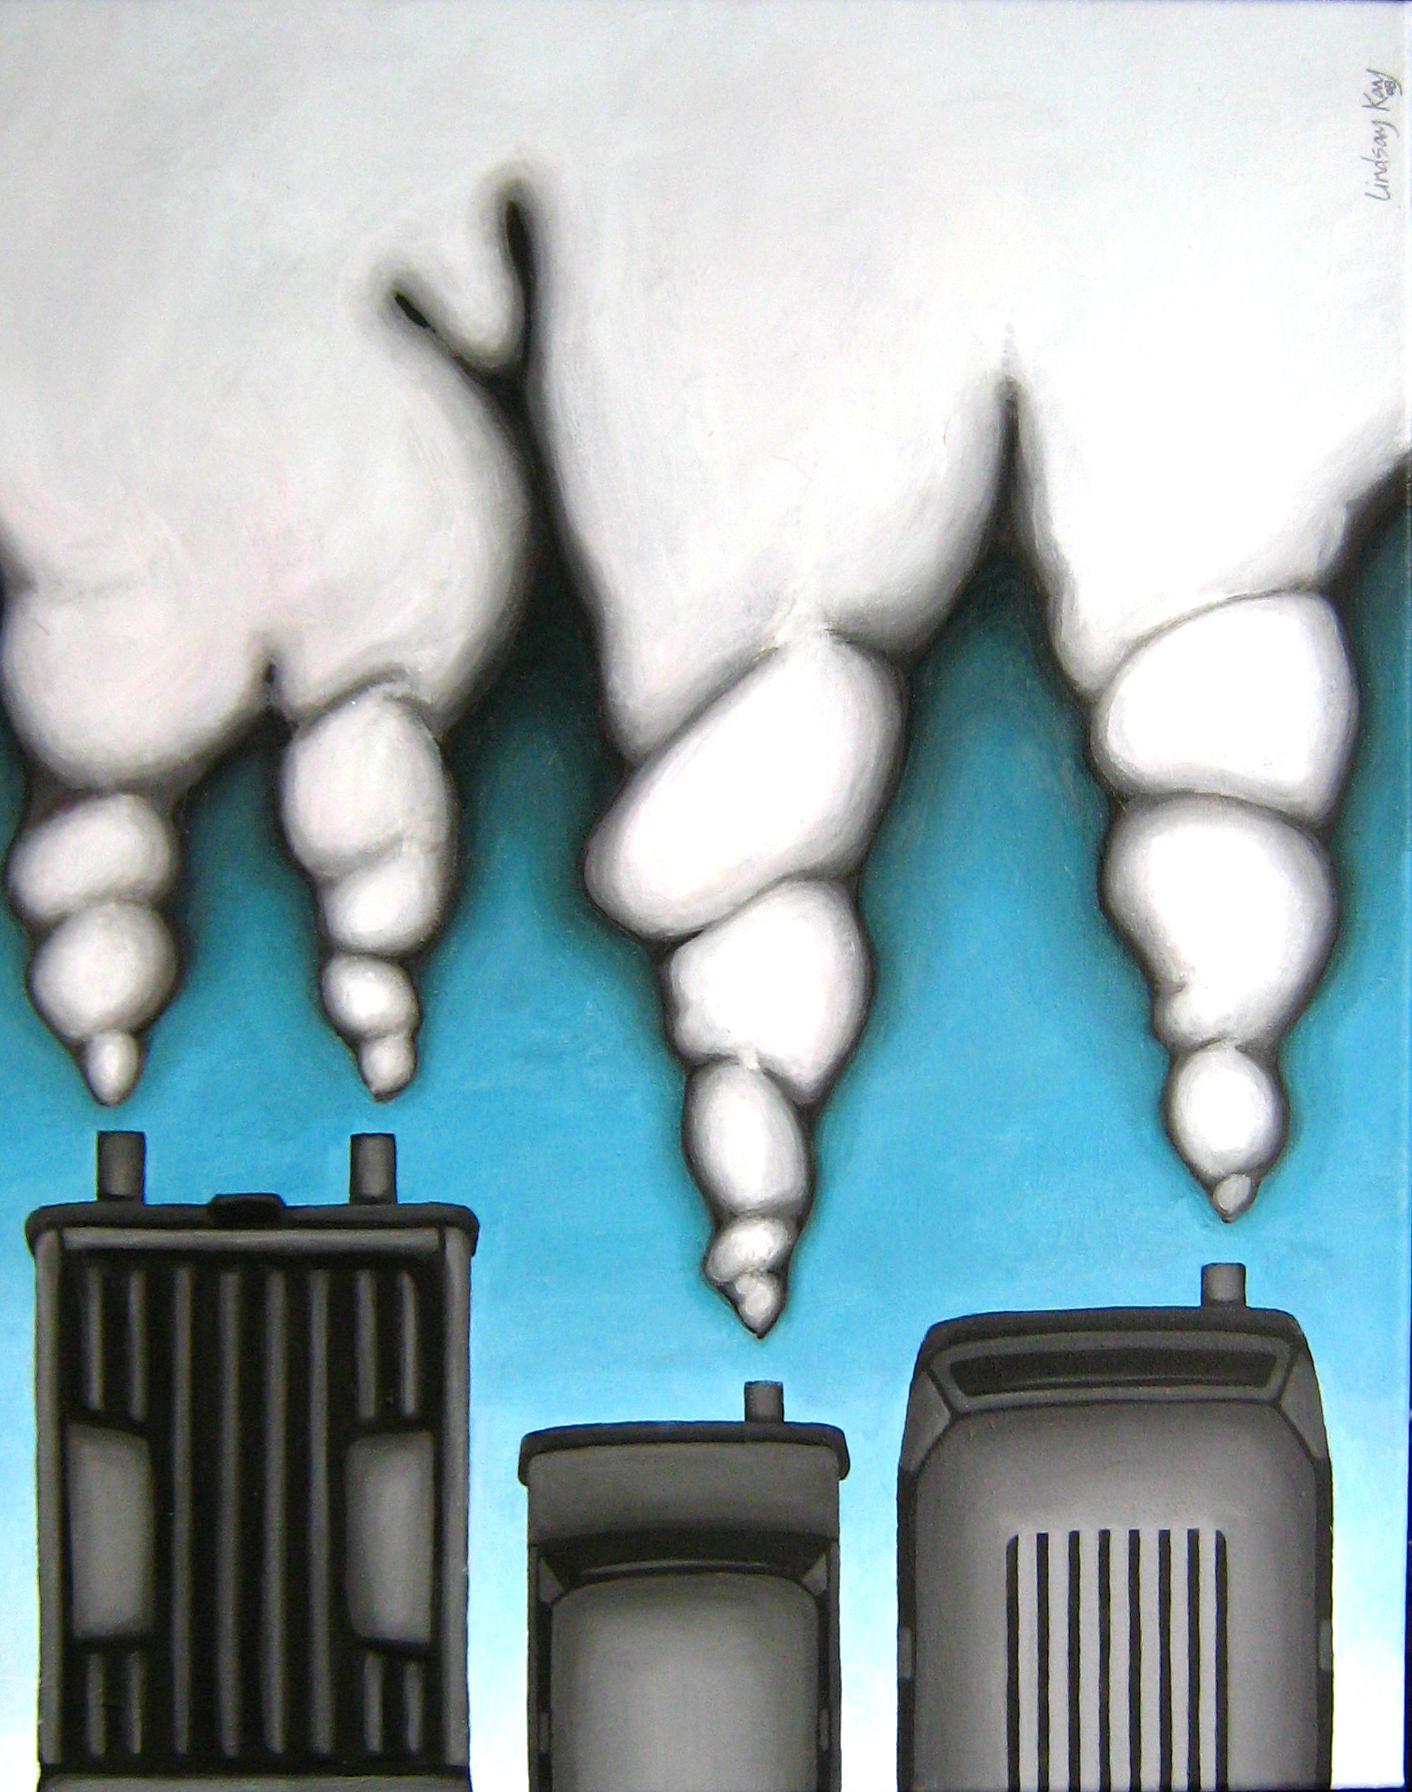 Car Pollution, vehicle exhaust, environmentalism